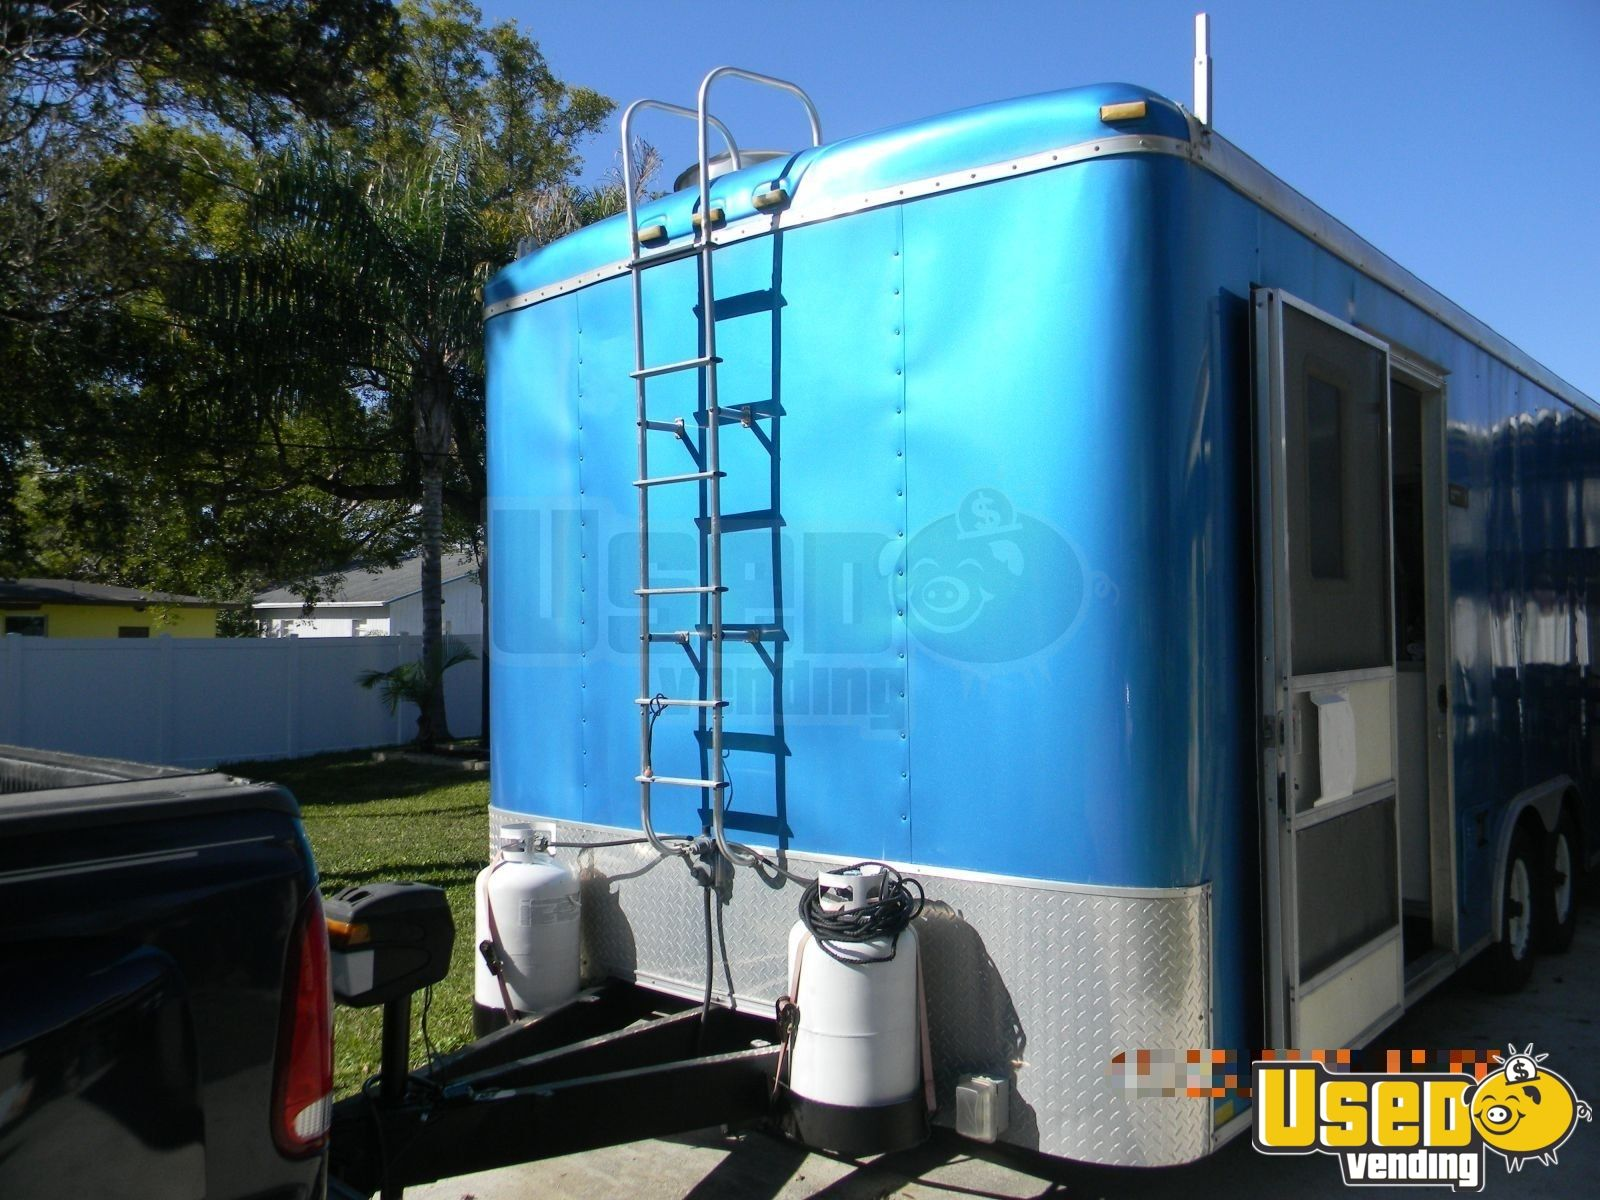 2004 2004 Cherokee All-purpose Food Trailer Air Conditioning Florida for Sale - 2